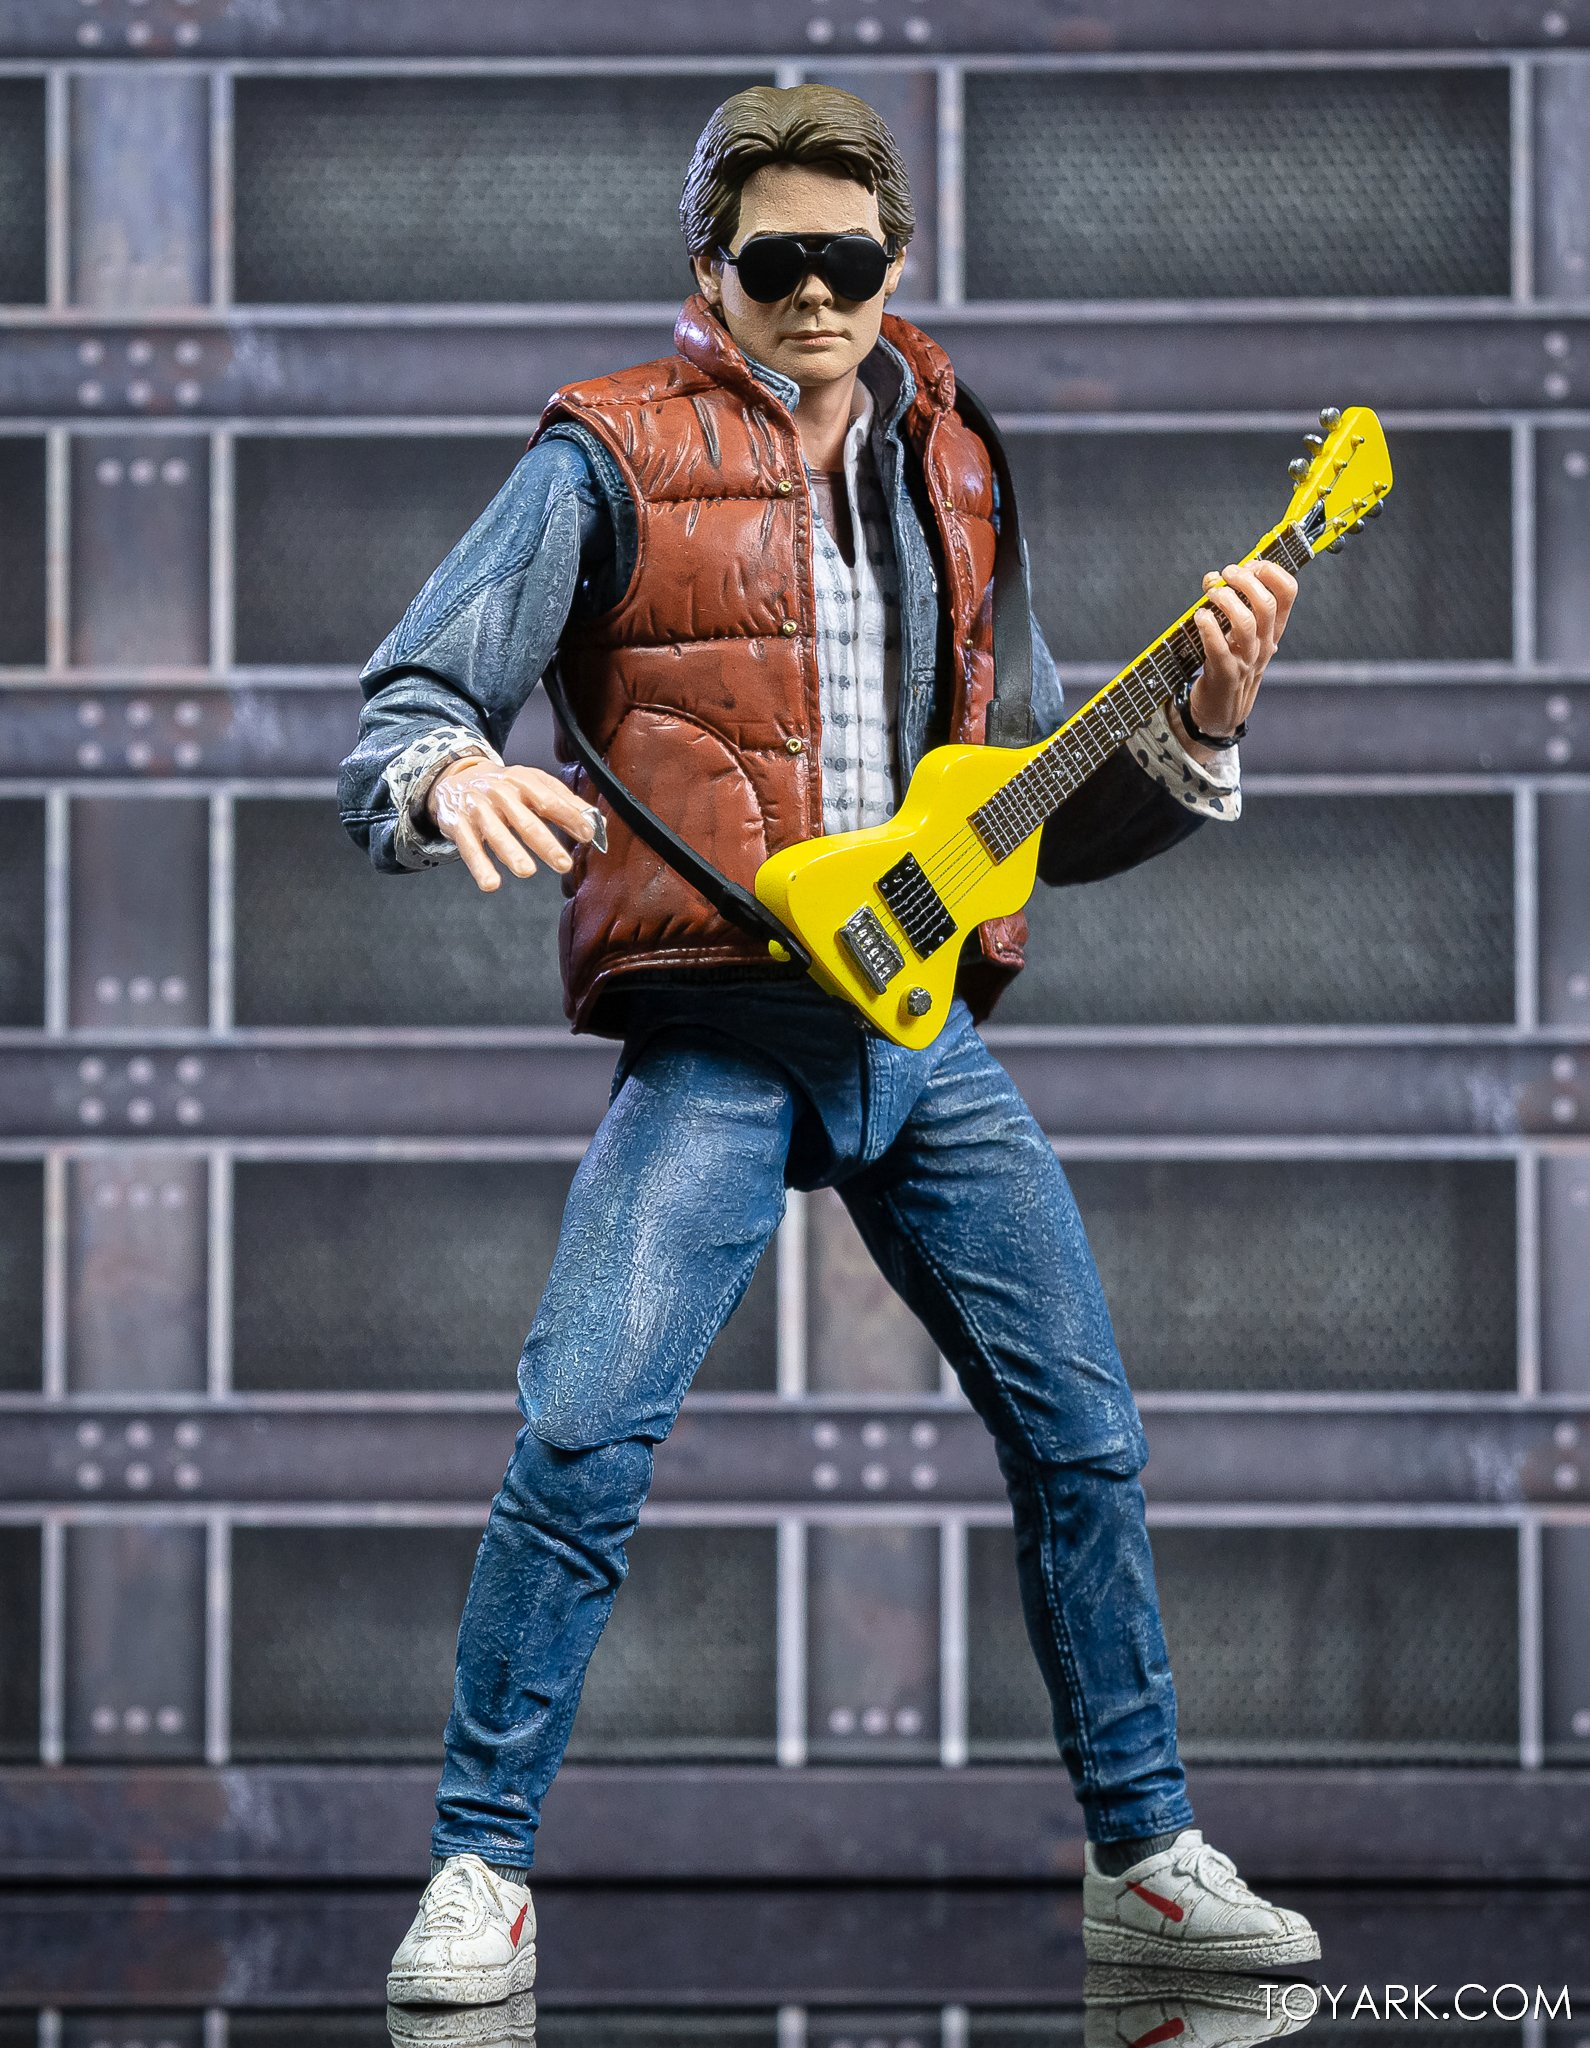 https://news.toyark.com/wp-content/uploads/sites/4/2020/10/NECA-Ultimate-Marty-McFly-Figure-025.jpg